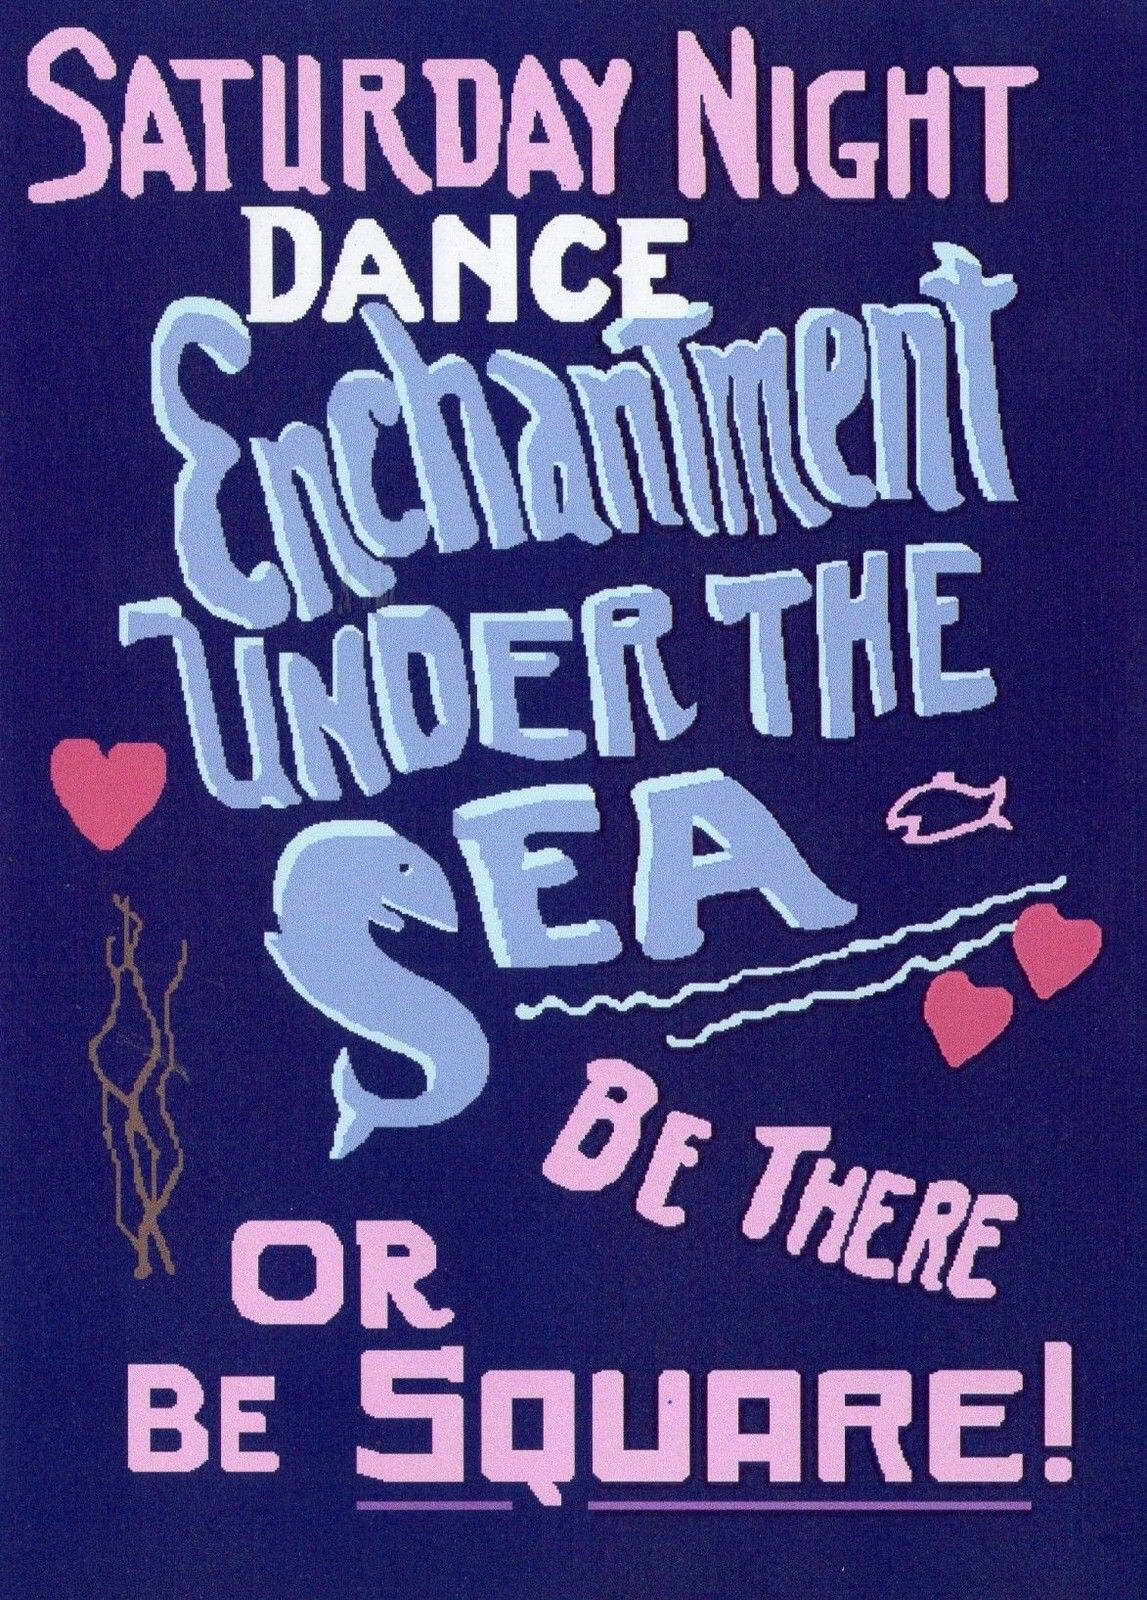 00487 Back To The Future Movie, Enchantment Under The Sea Dance Print Poster